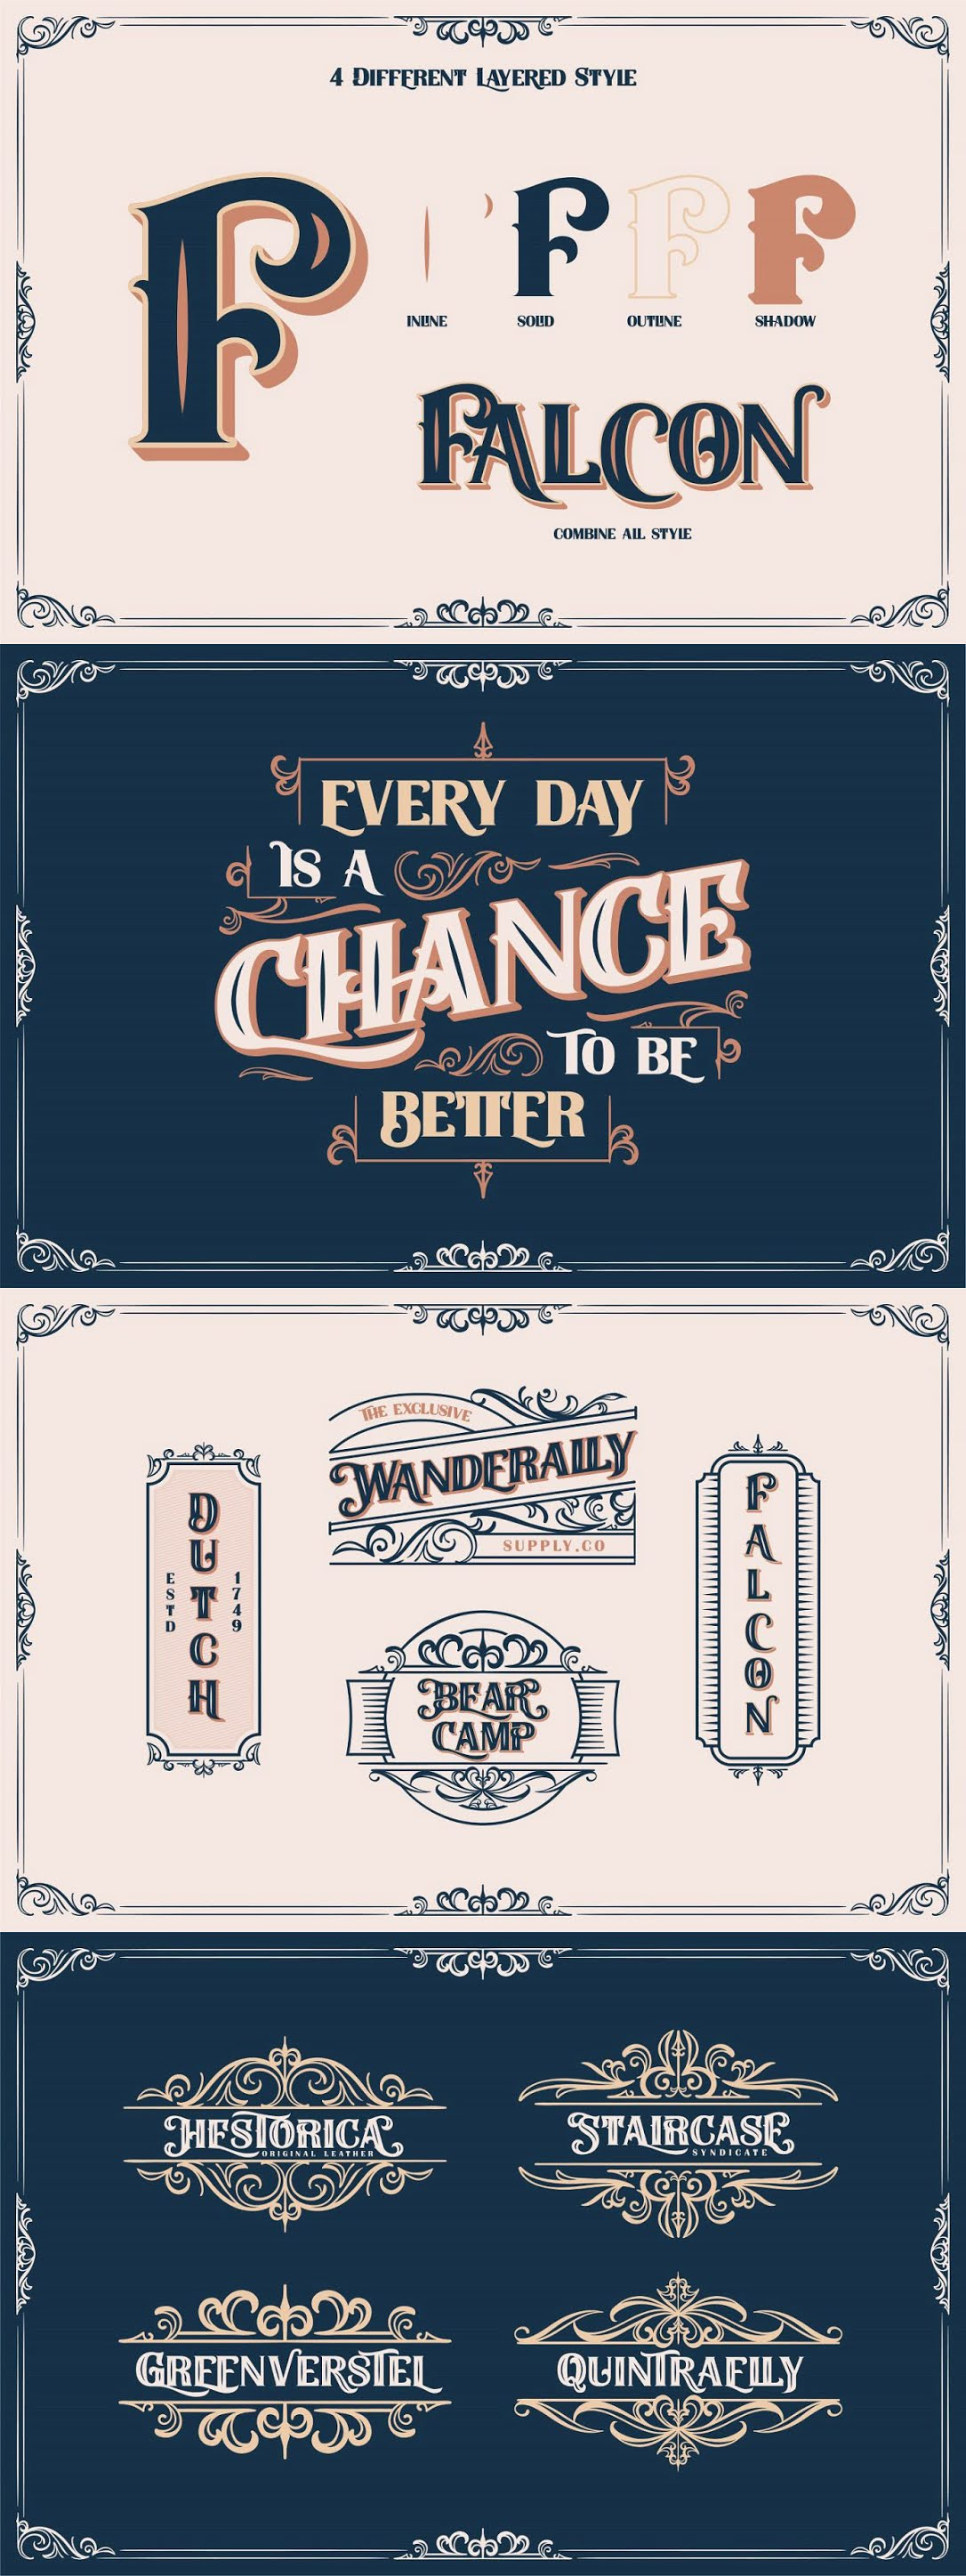 Filedstone Layered Fonts Free Download